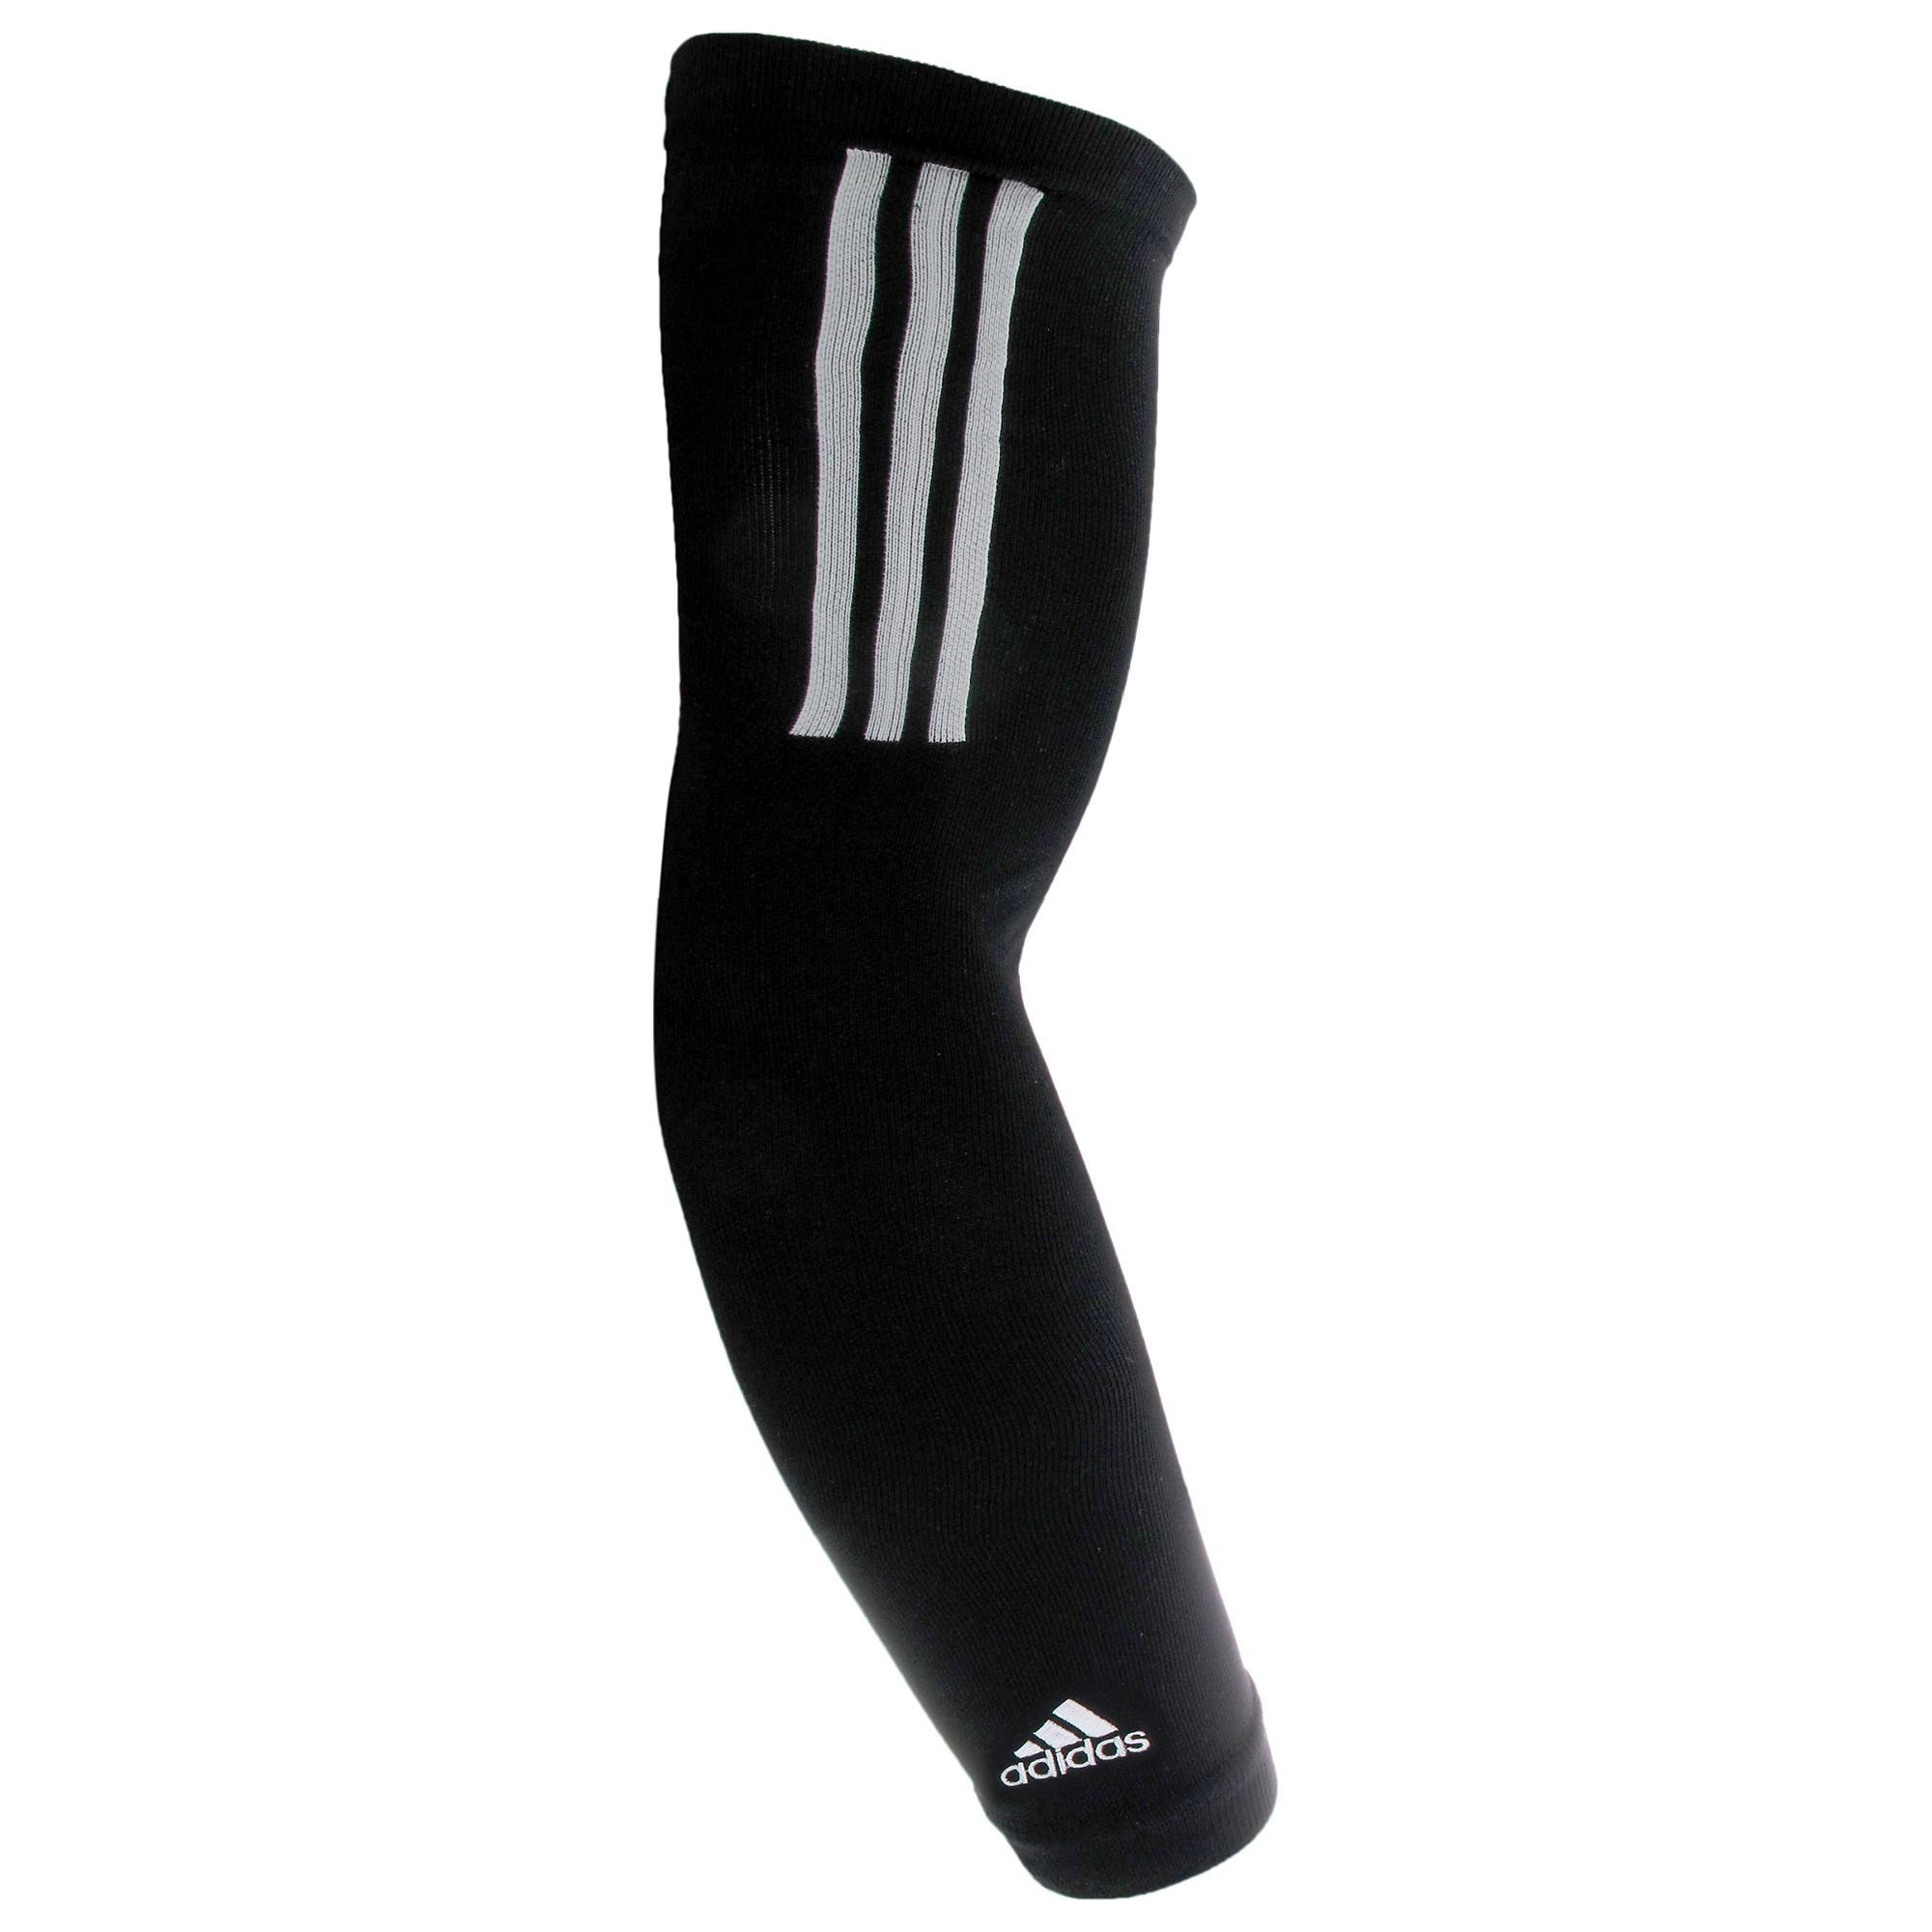 adidas Compression Arm Sleeve | Compression arm sleeves